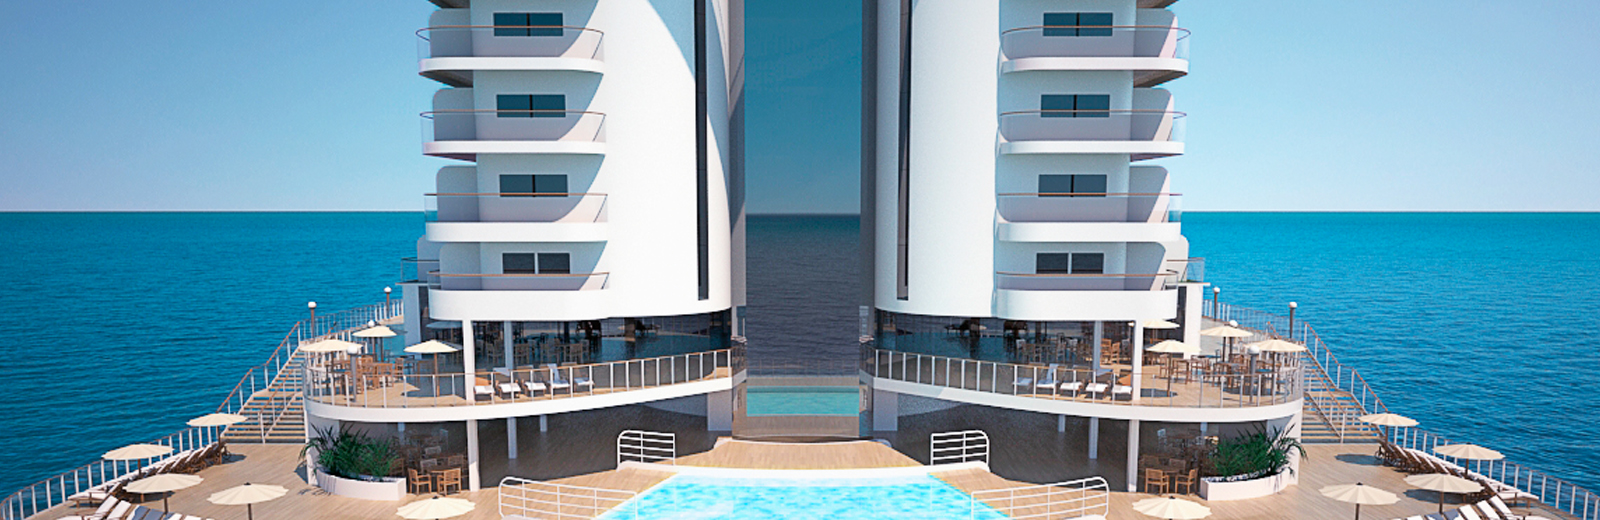 MSC Seaside 1600x520 image onlya